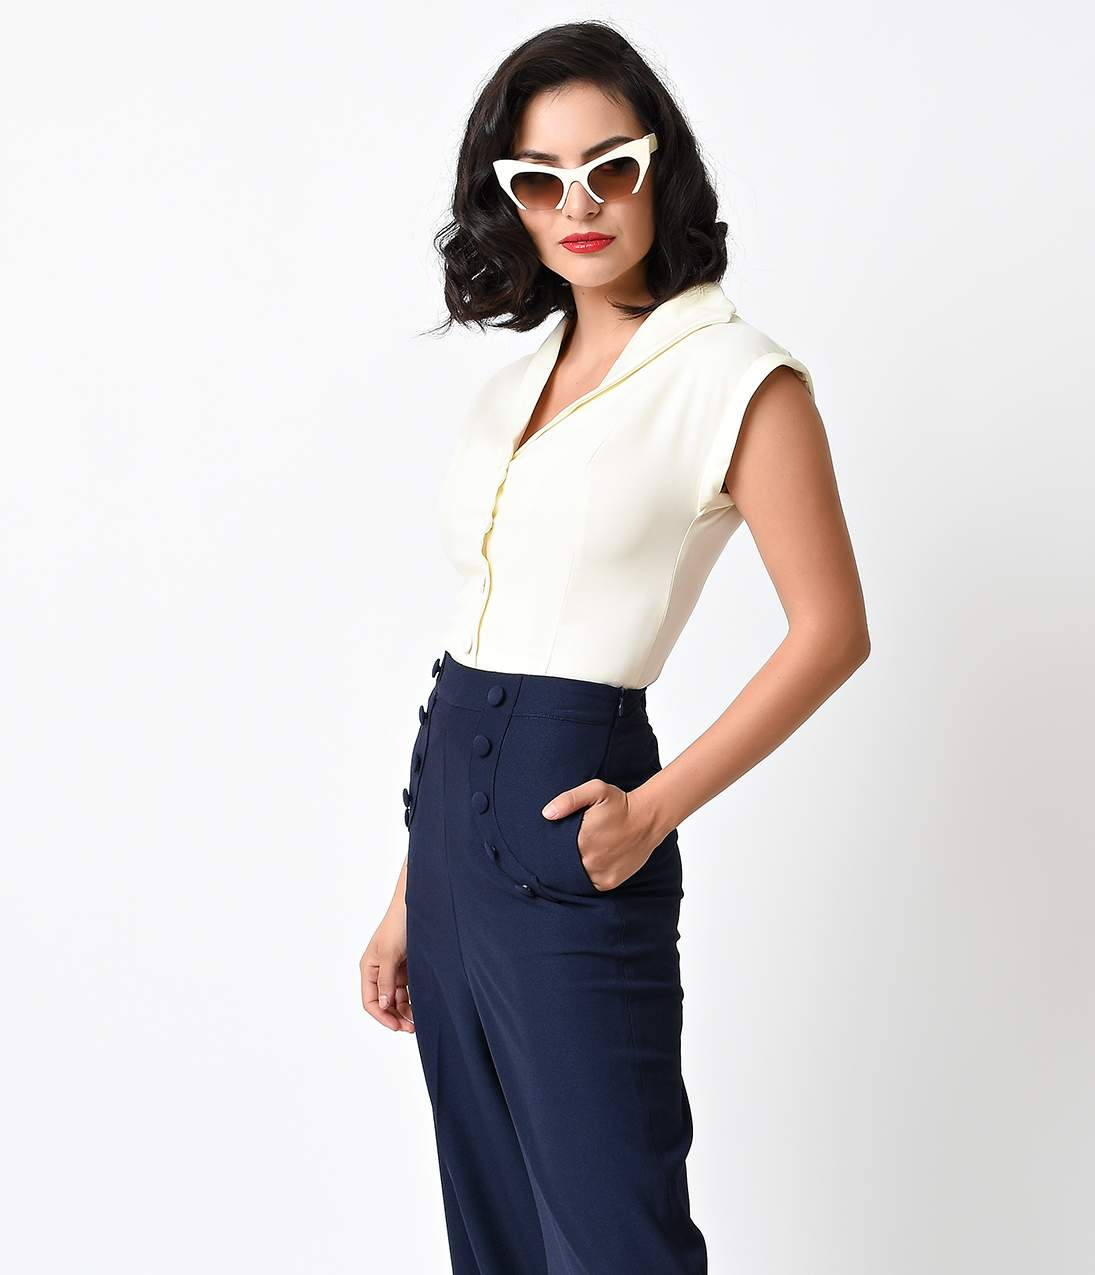 What Did Women Wear in the 1950s? 1950s Fashion Guide Banned Vintage Off White Button Up Cap Sleeve Blouse $48.00 AT vintagedancer.com